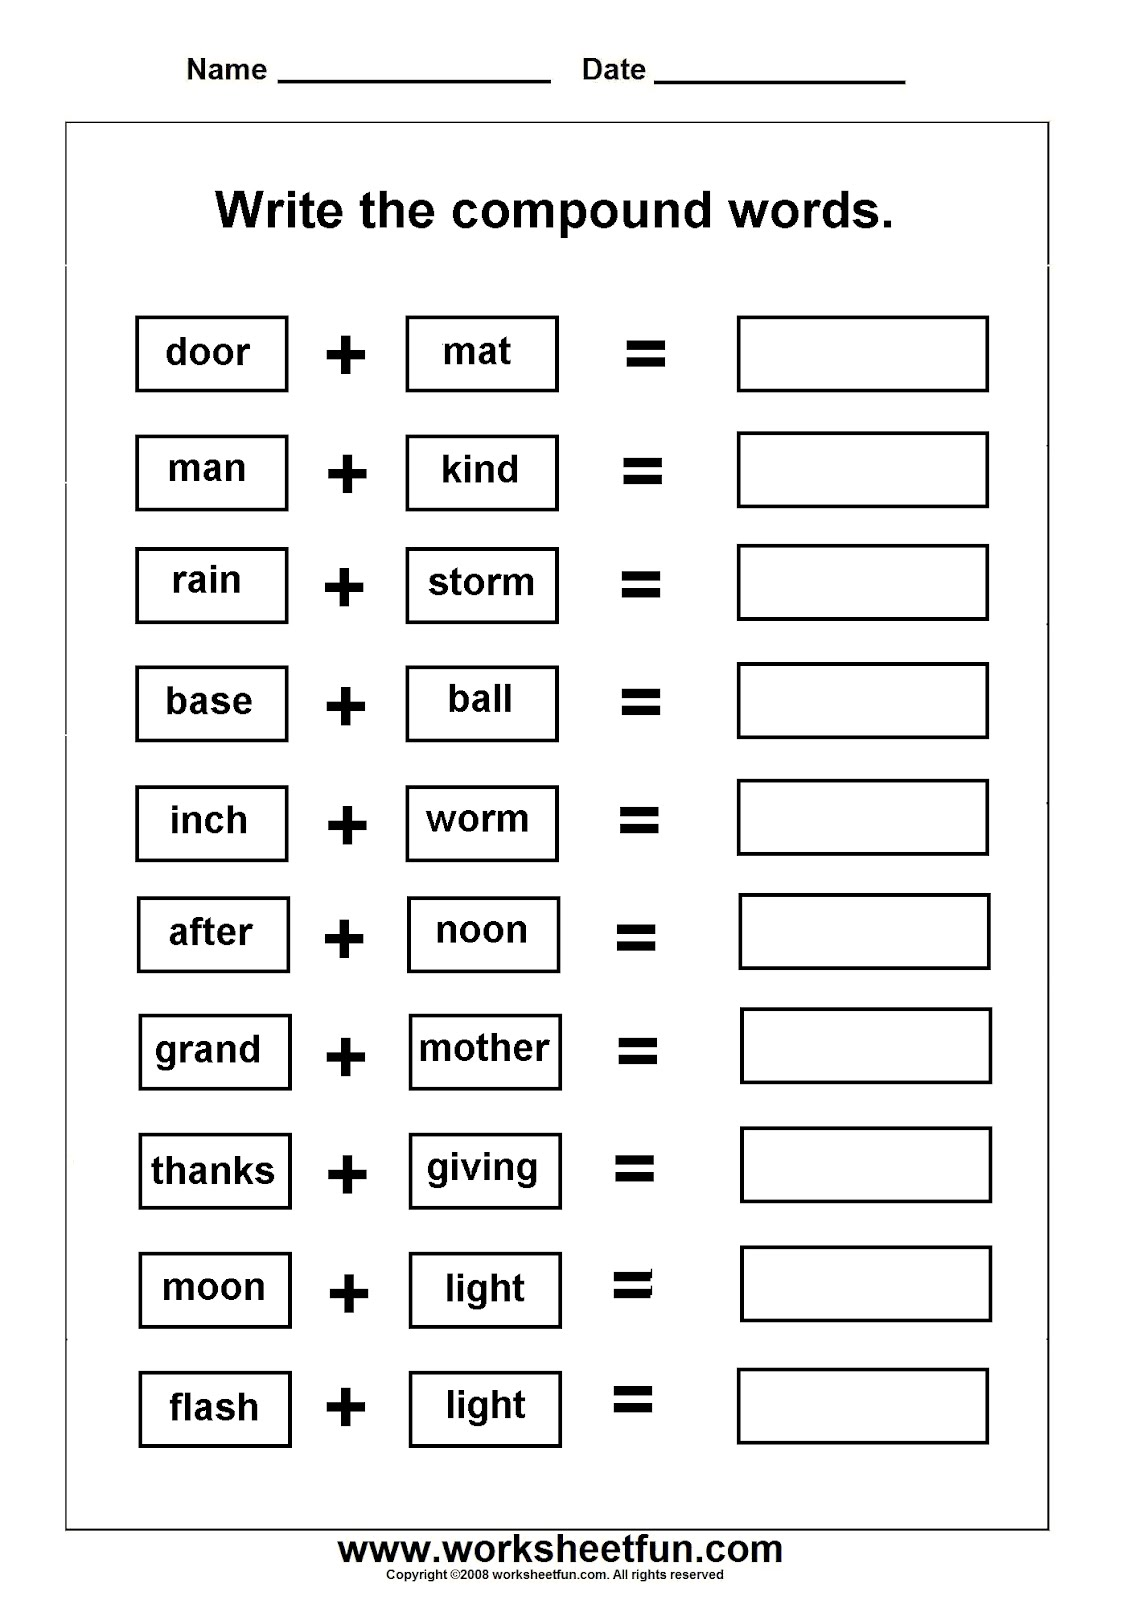 Printable Compound Word Worksheets